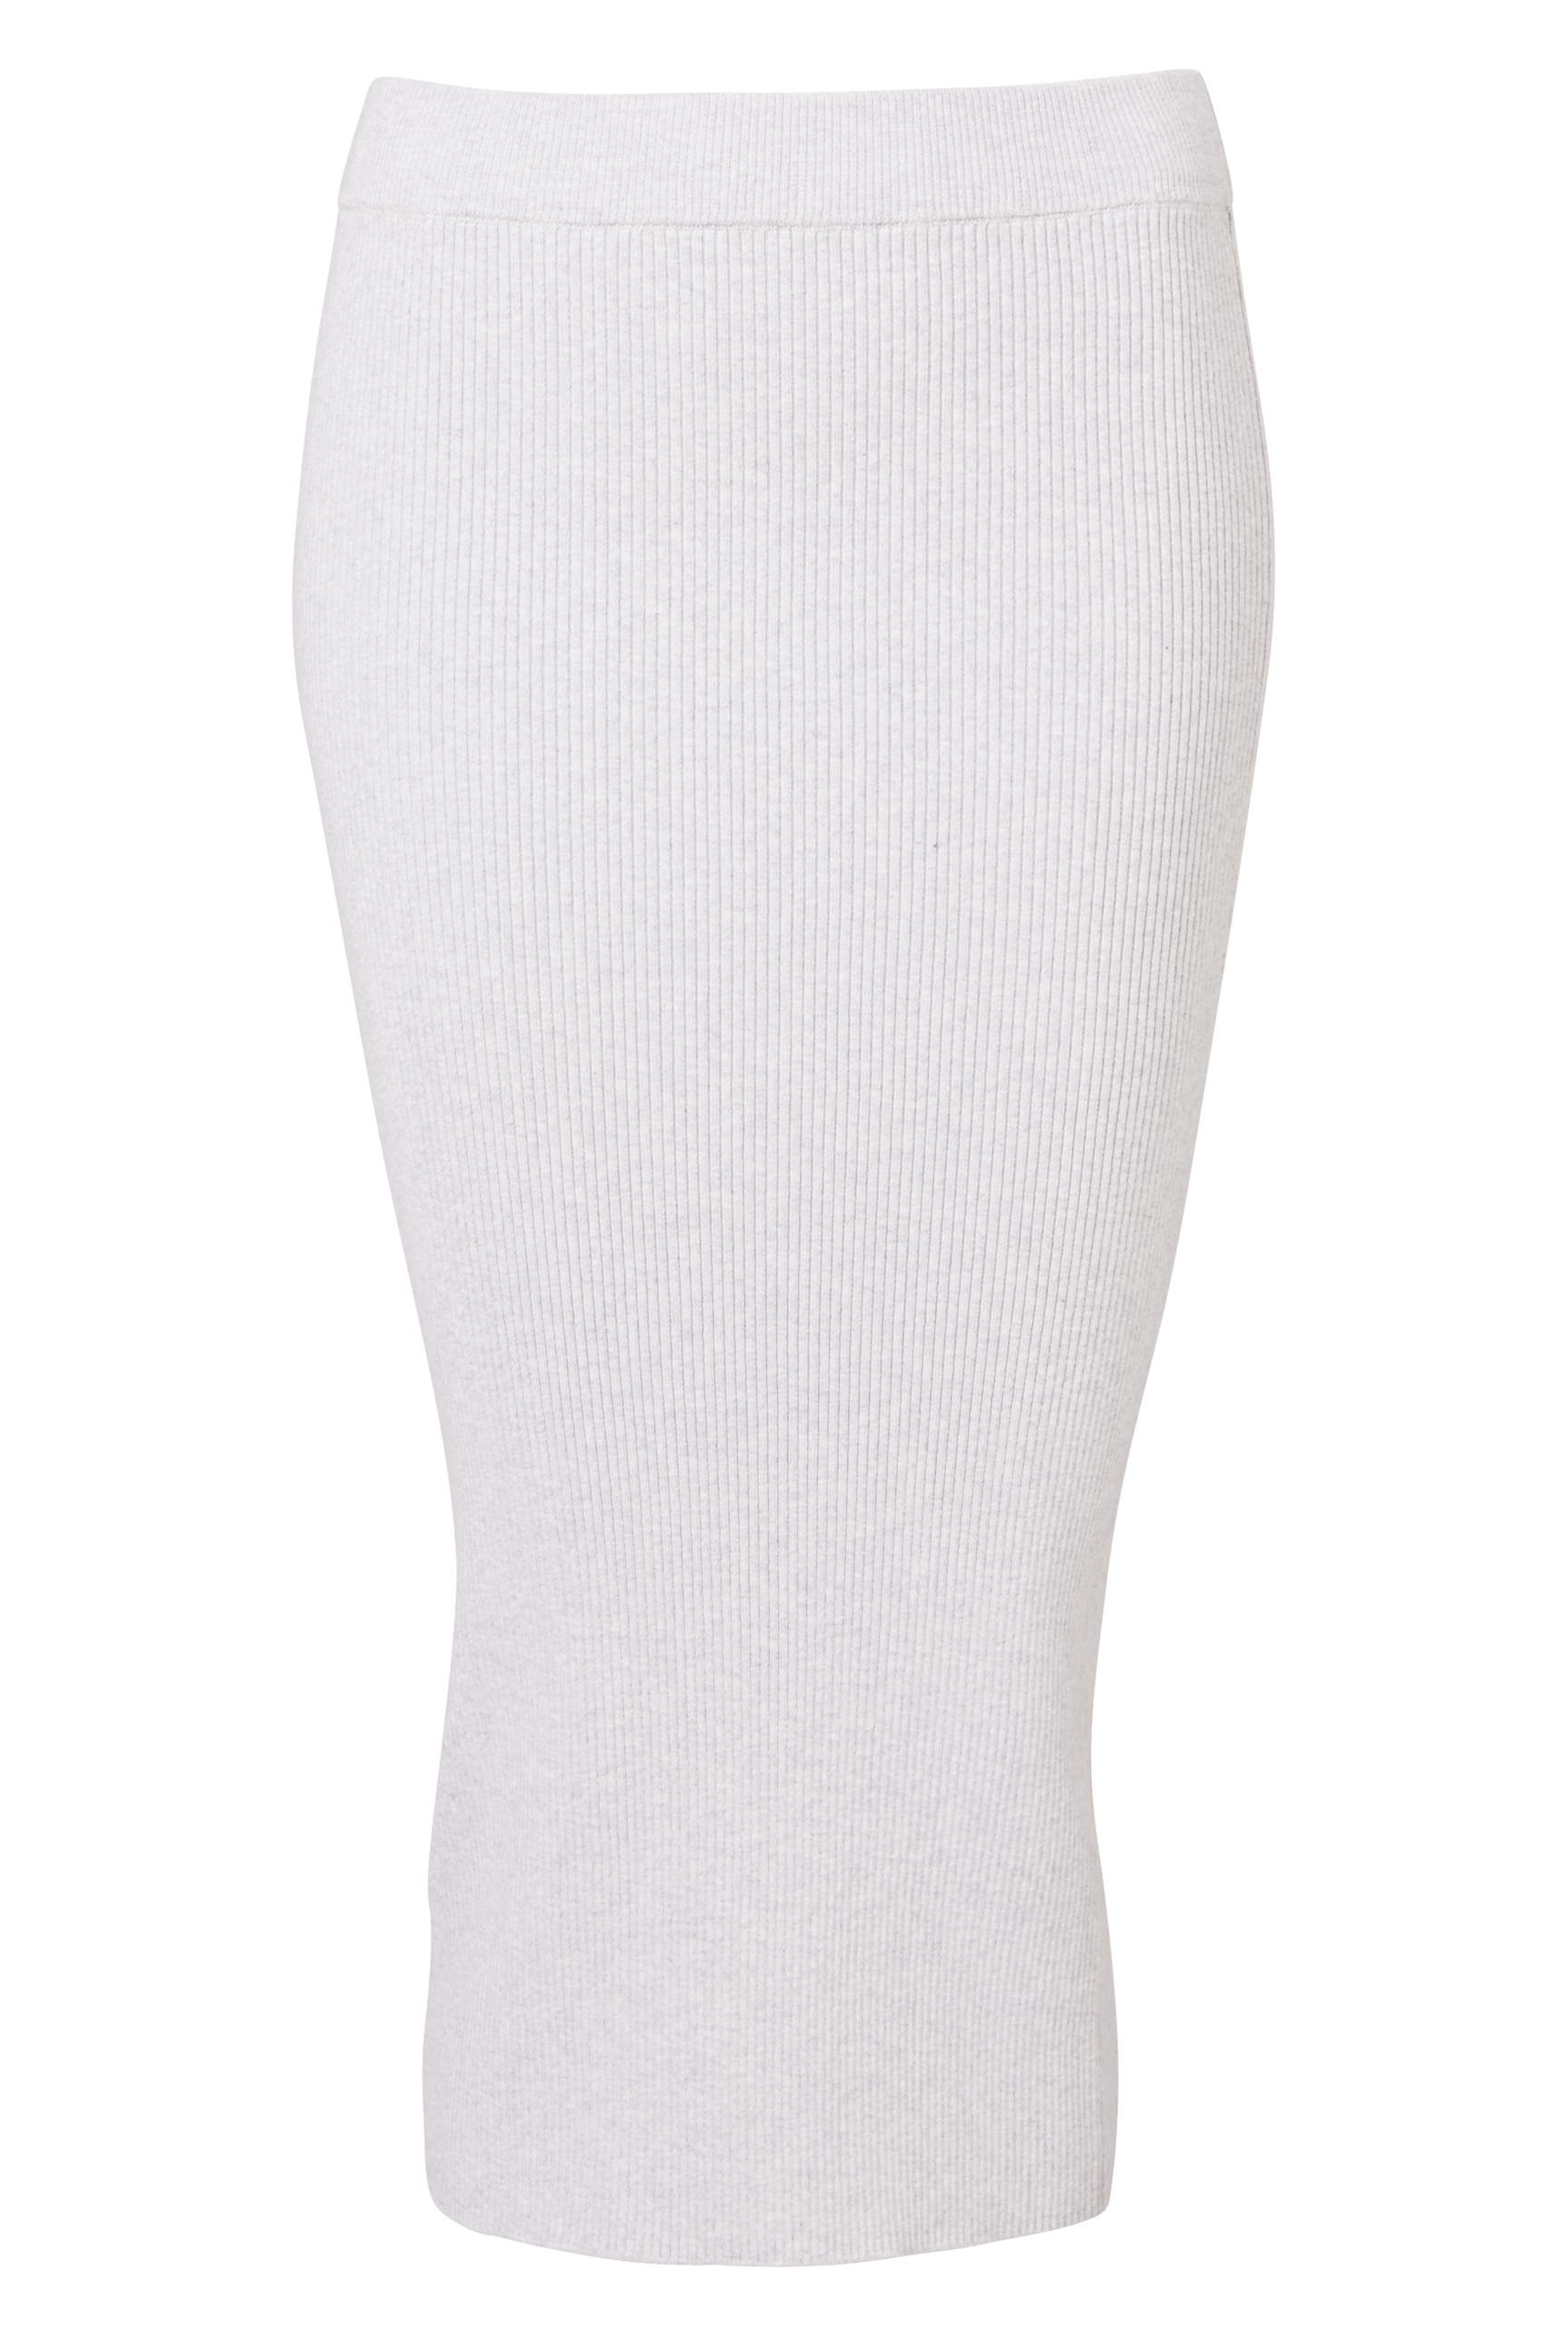 60193690_Witchery Ribbed Tube Skirt, RRP$109.90